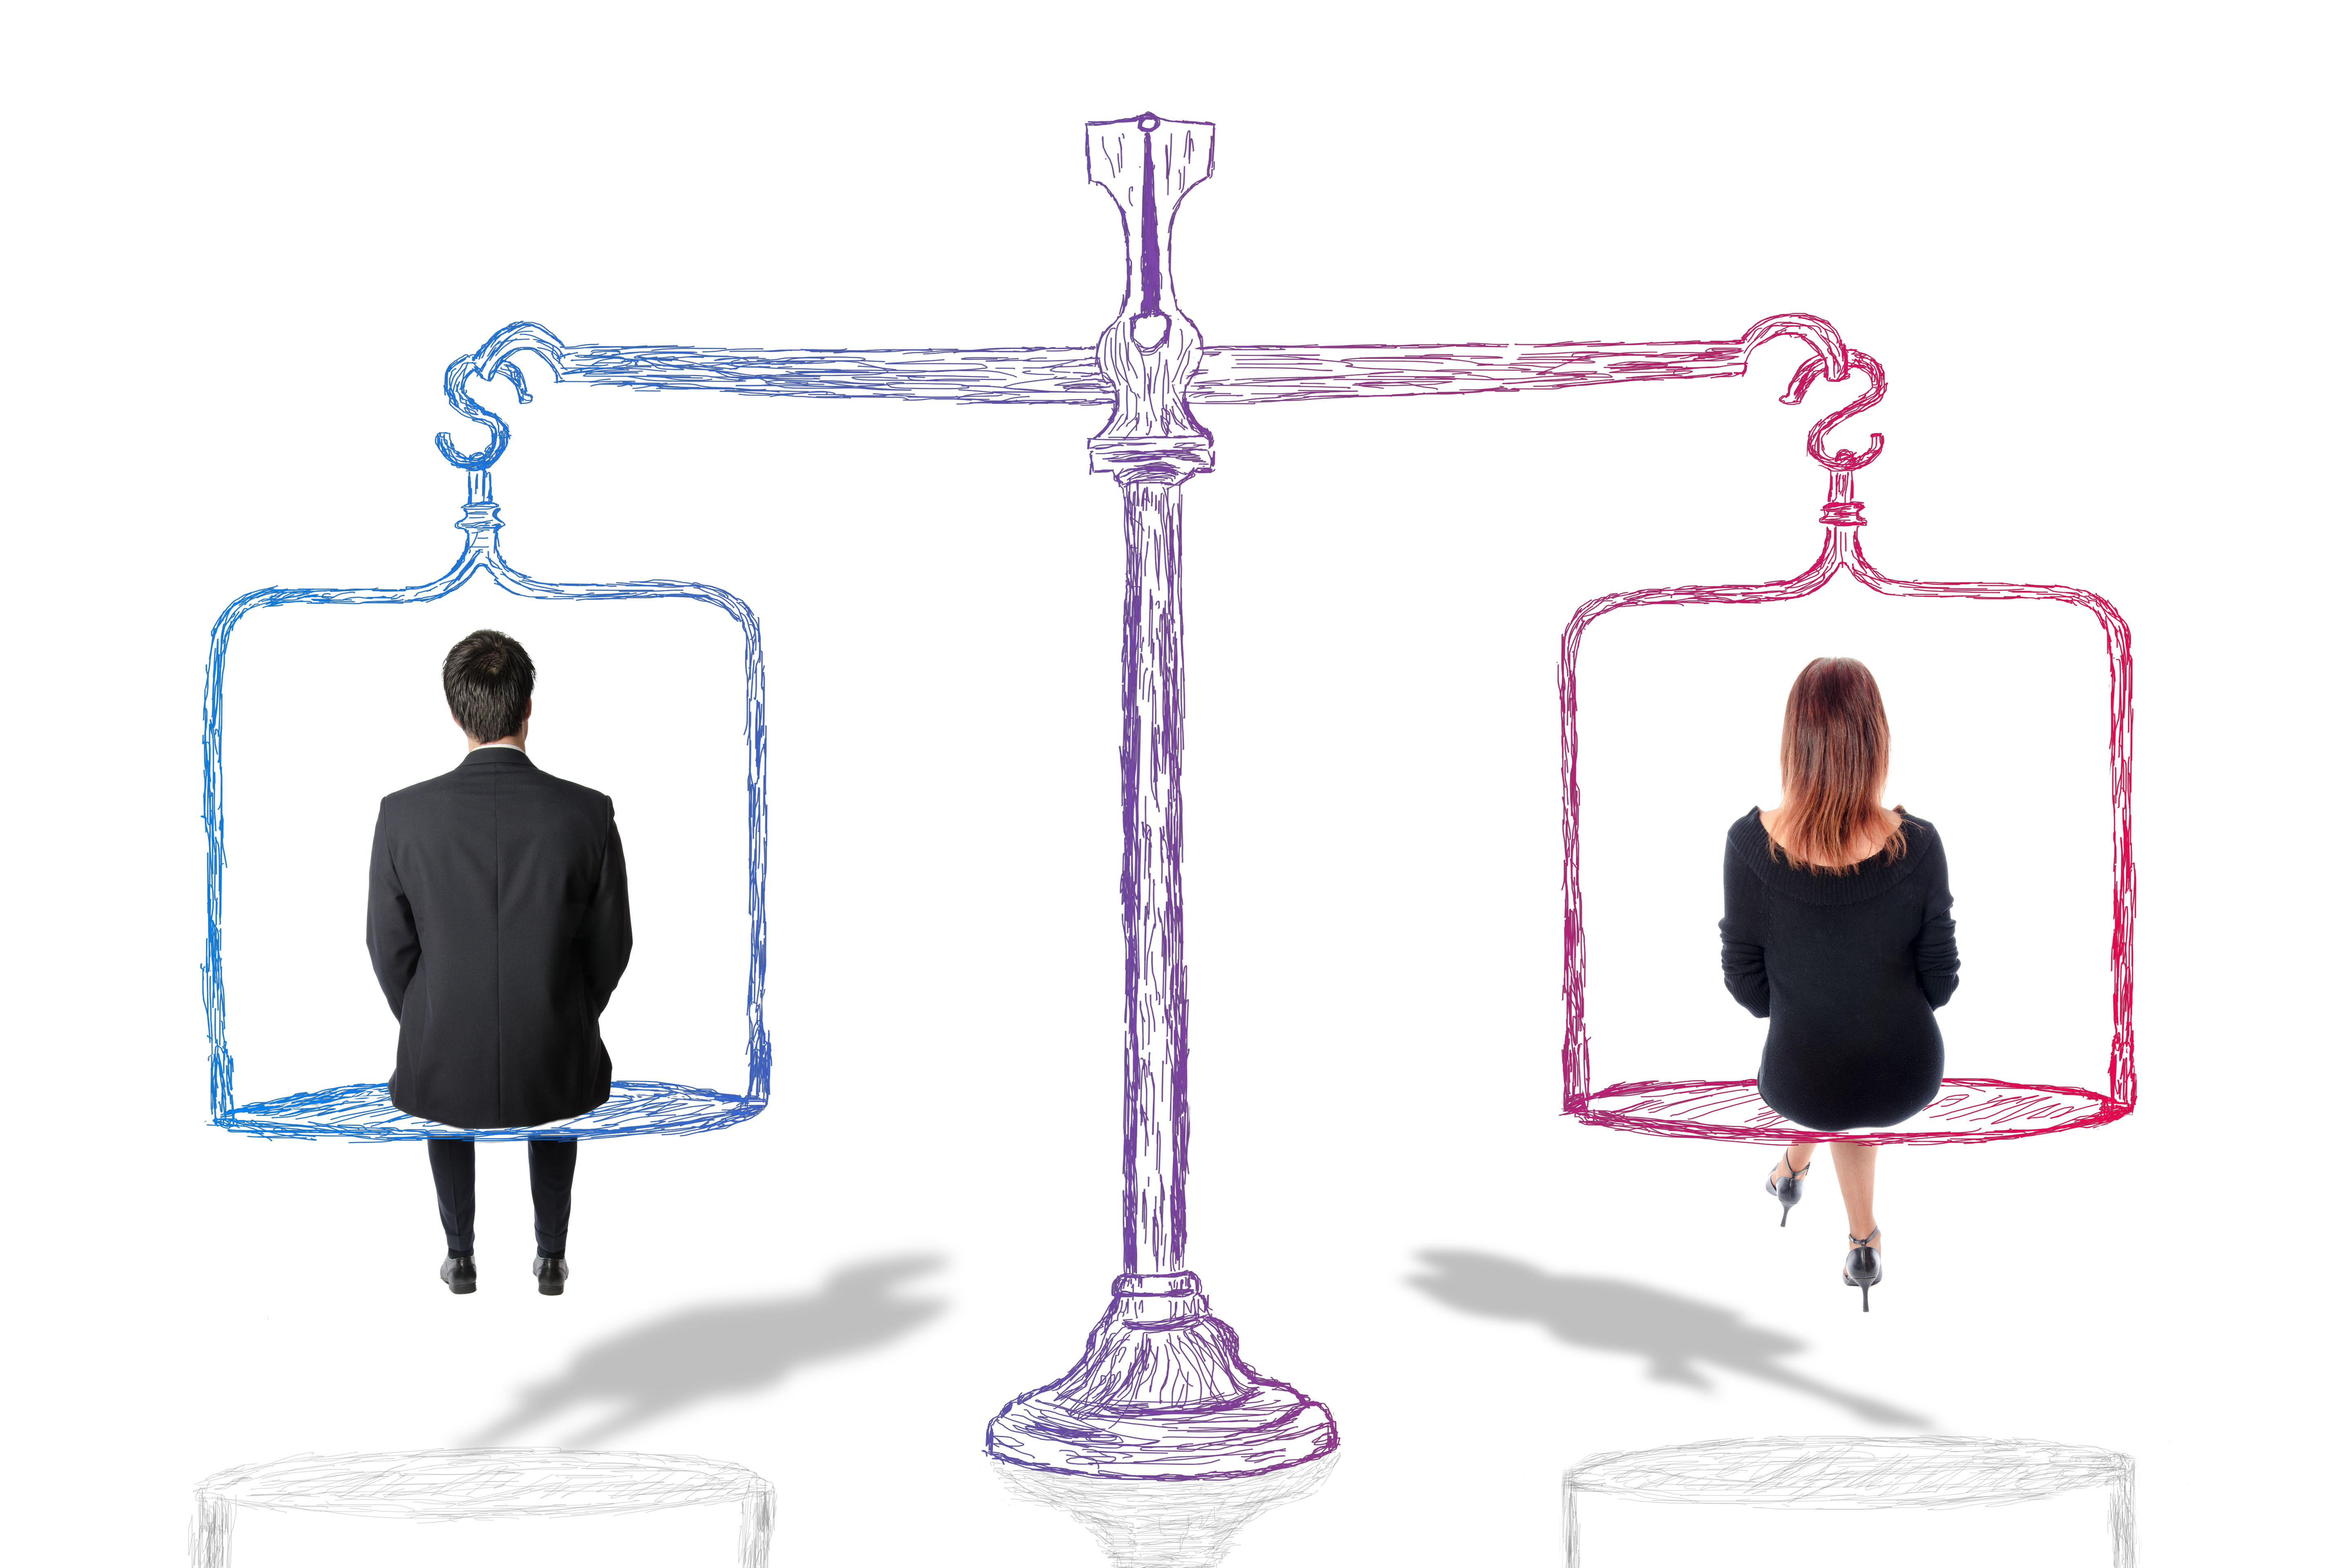 Are men and women equal in today's society?